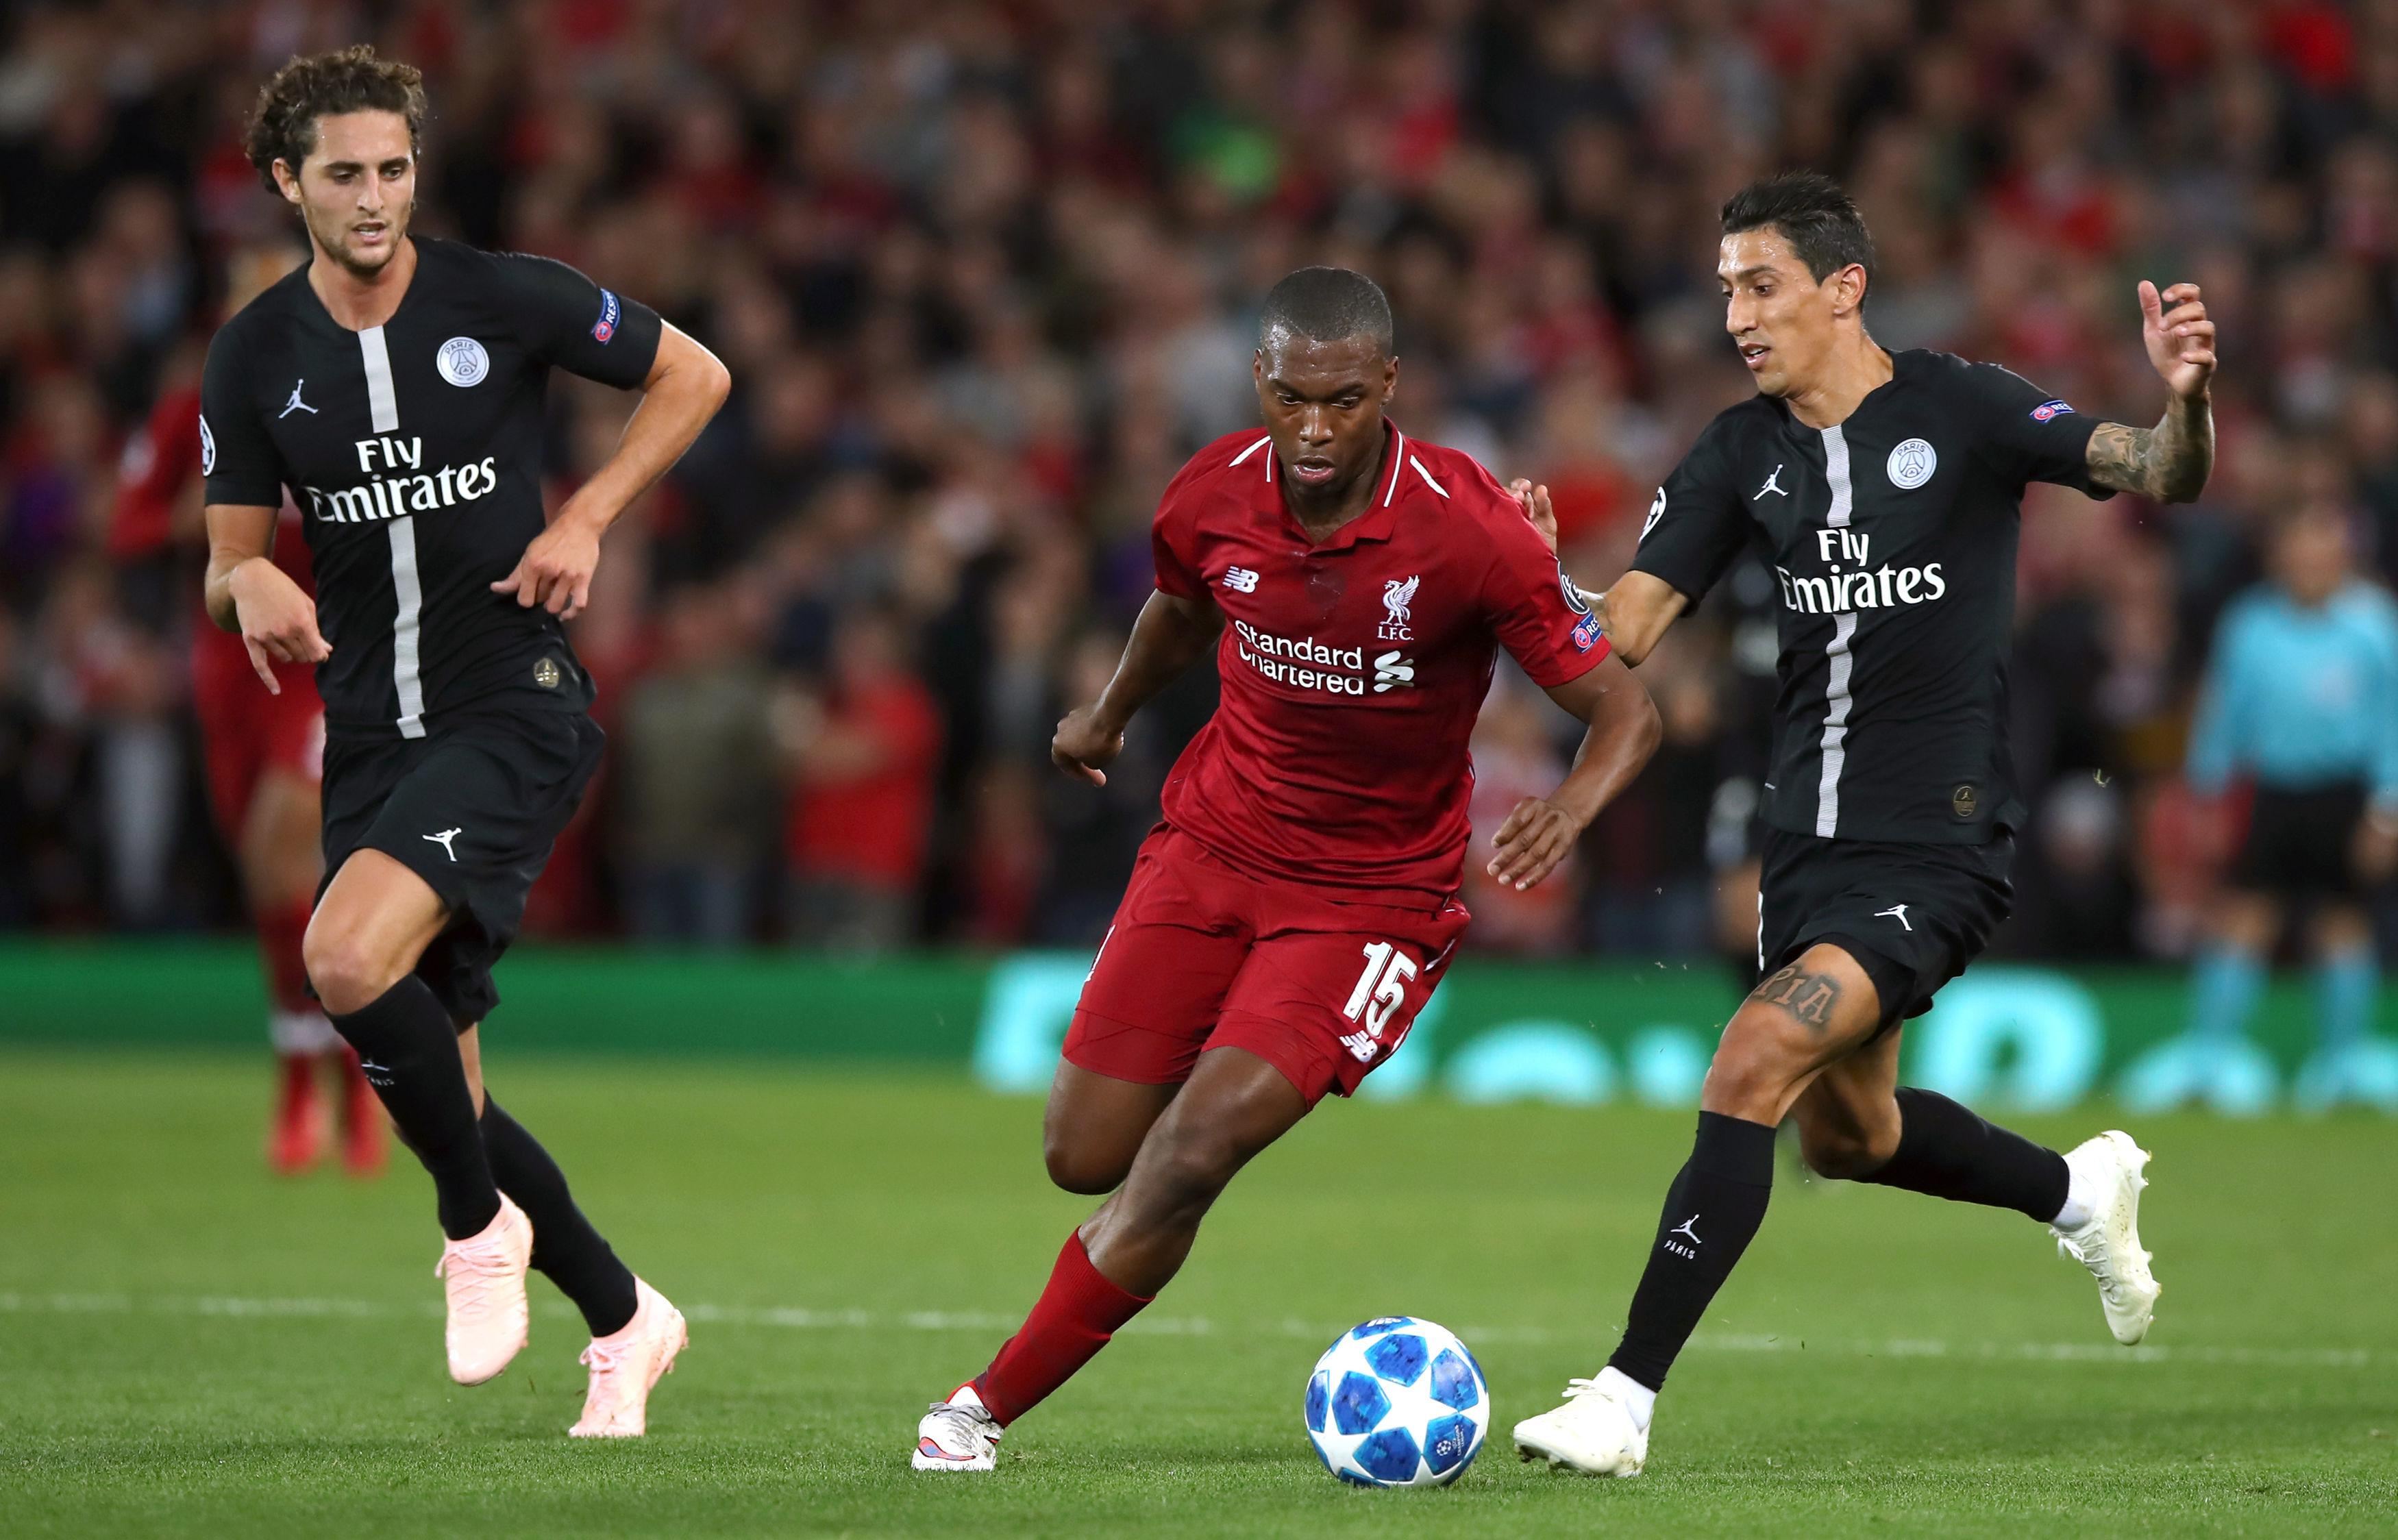 Liverpool walked all over Di Maria and Rabiot